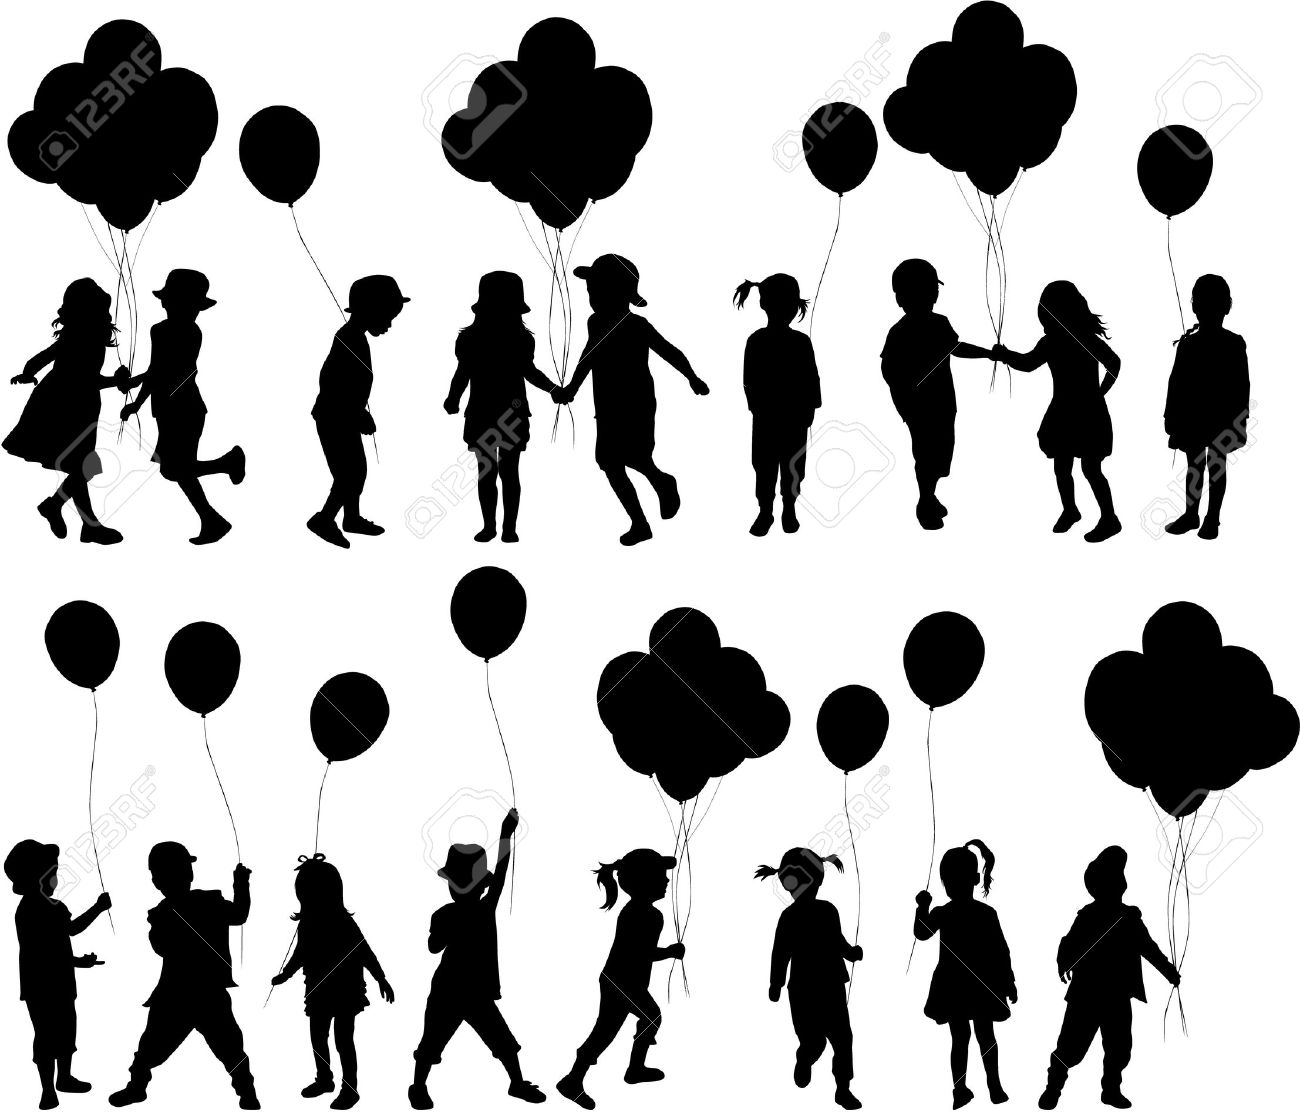 Silhouettes of children with balloon. - 34626731